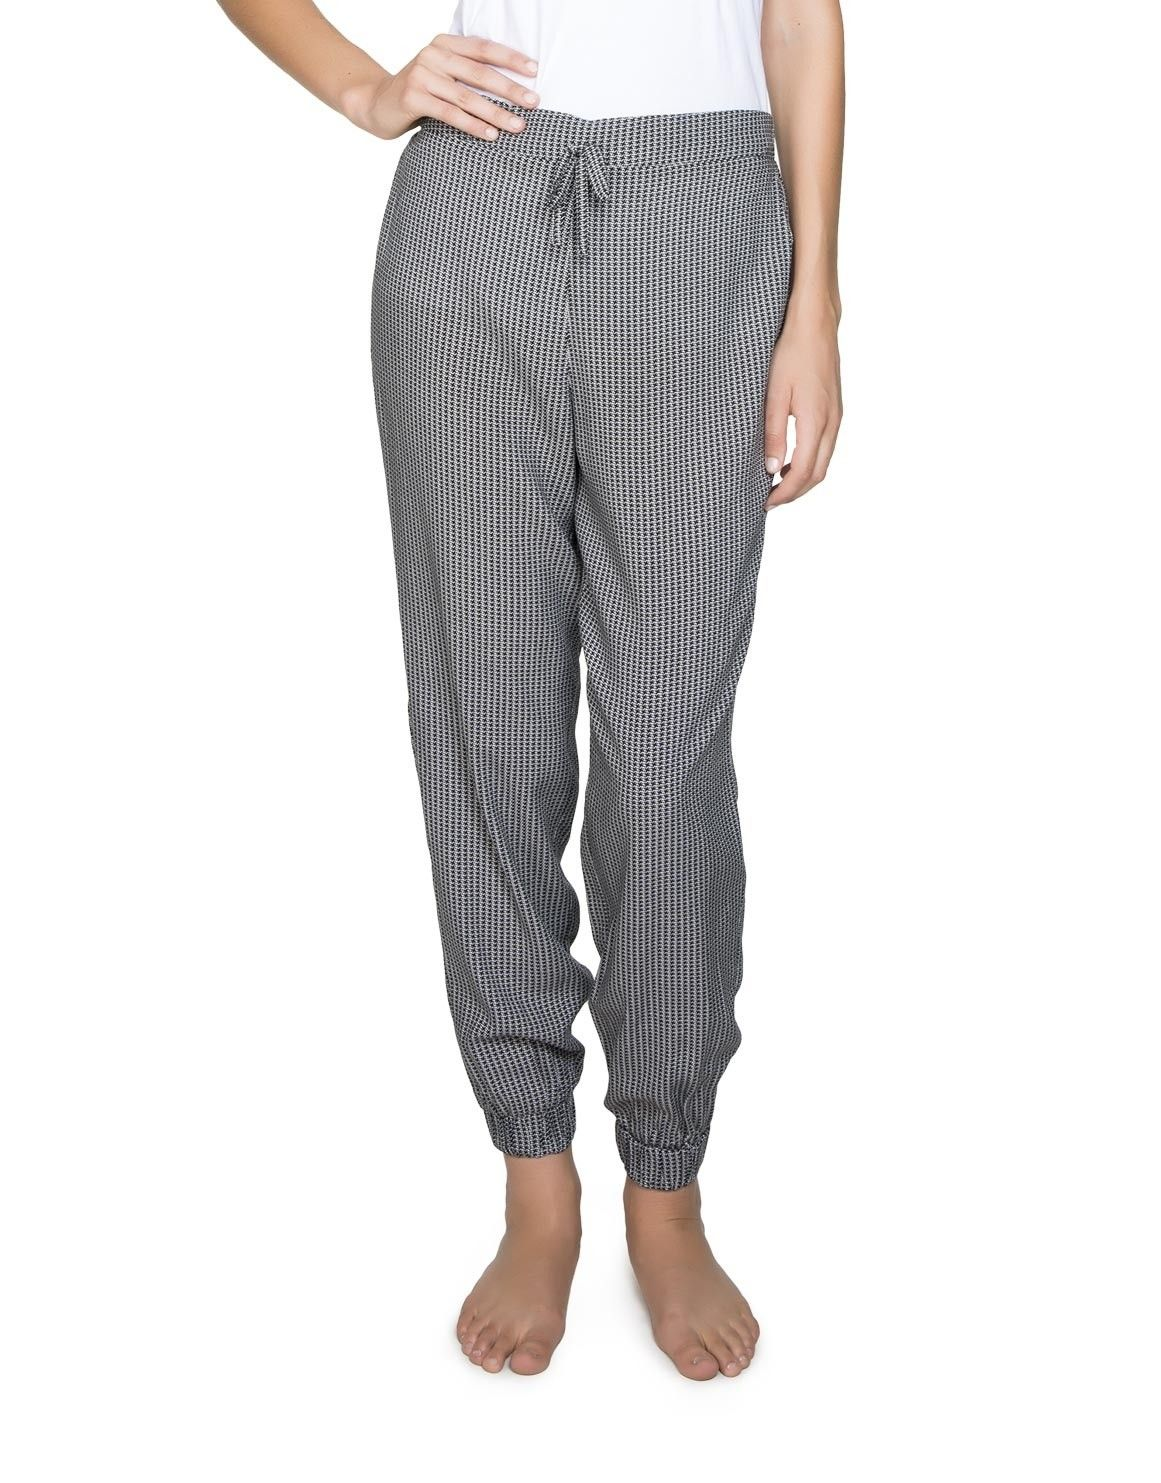 Cuffed Viscose Sleep Pants